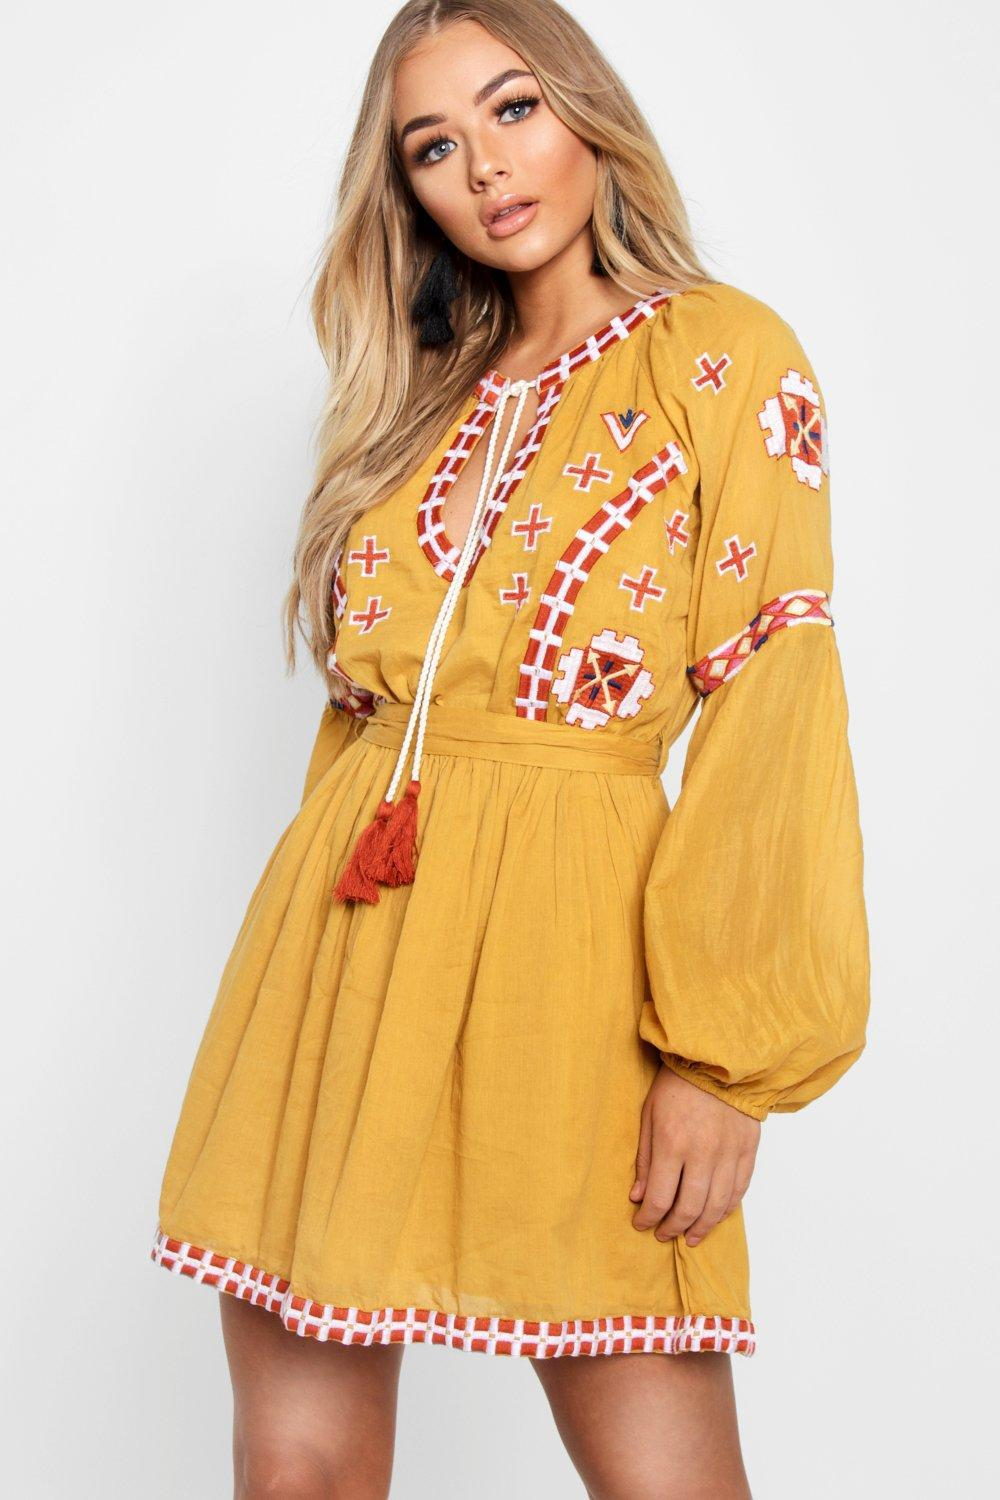 58123cb725bb Lyst - Boohoo Embroidered Tie Smock Dress in Yellow